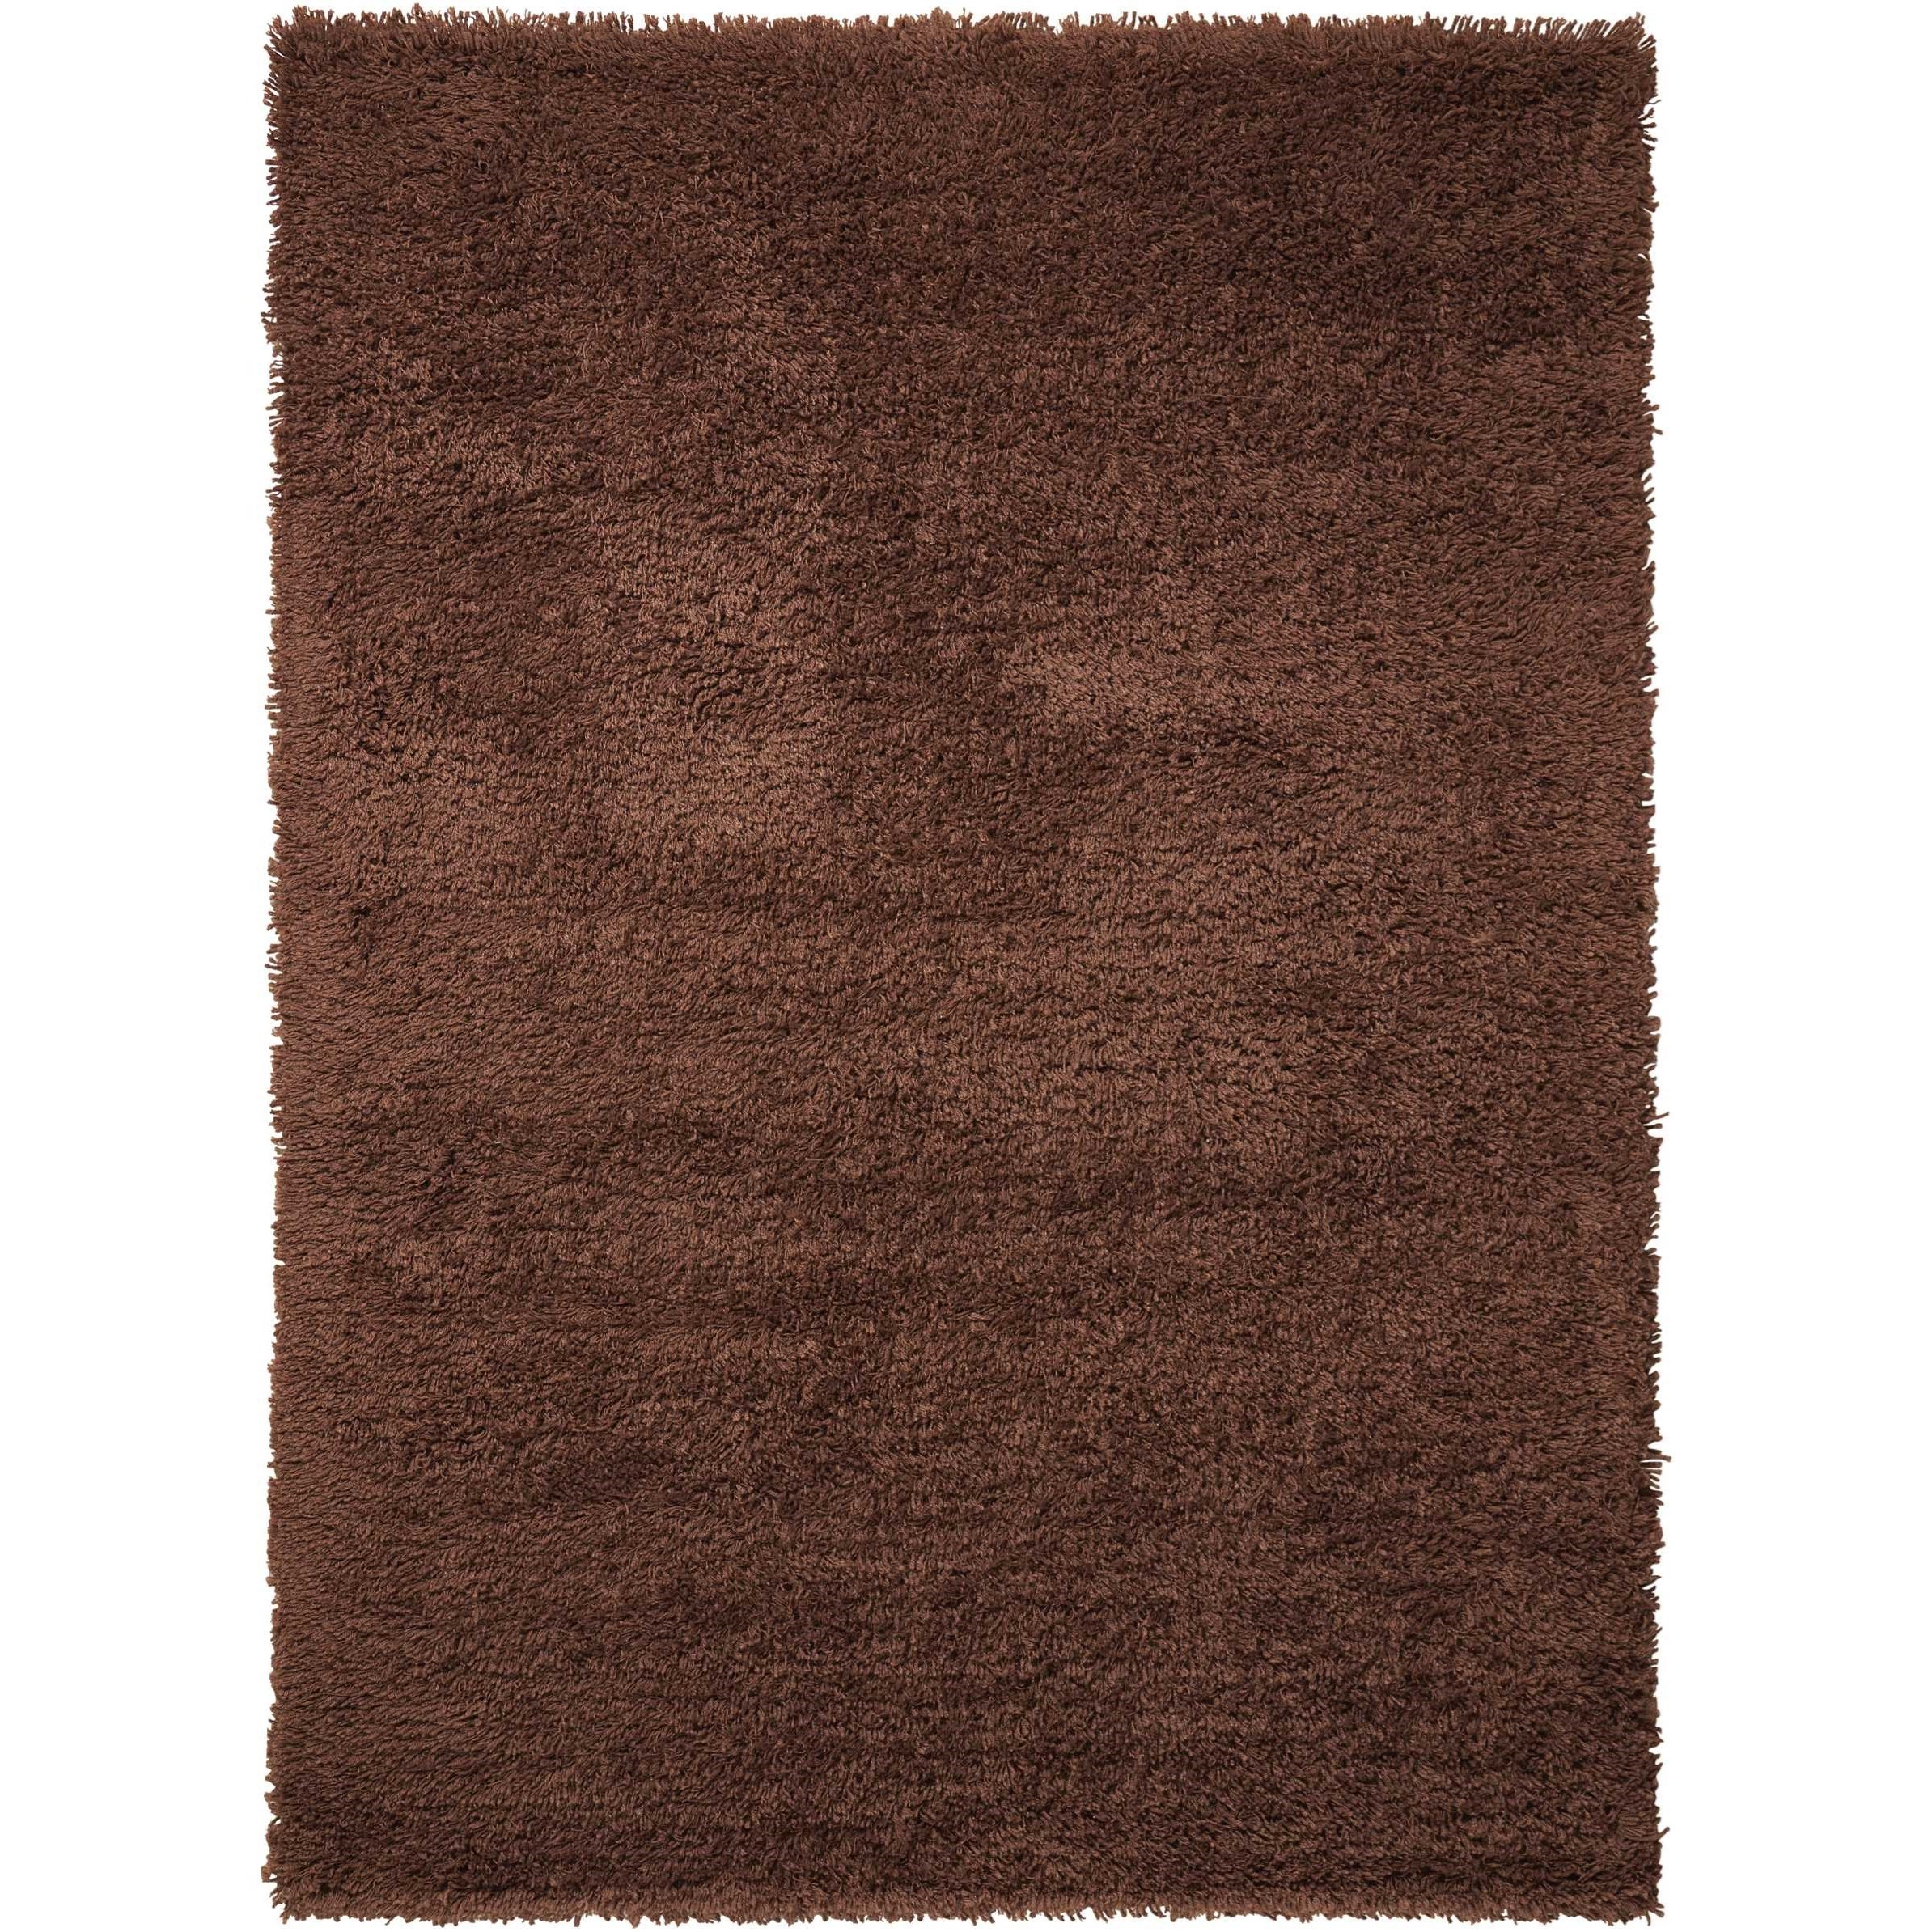 """Splendor 2'3"""" x 3'9"""" Chocolate Rectangle Rug by Nourison at Home Collections Furniture"""